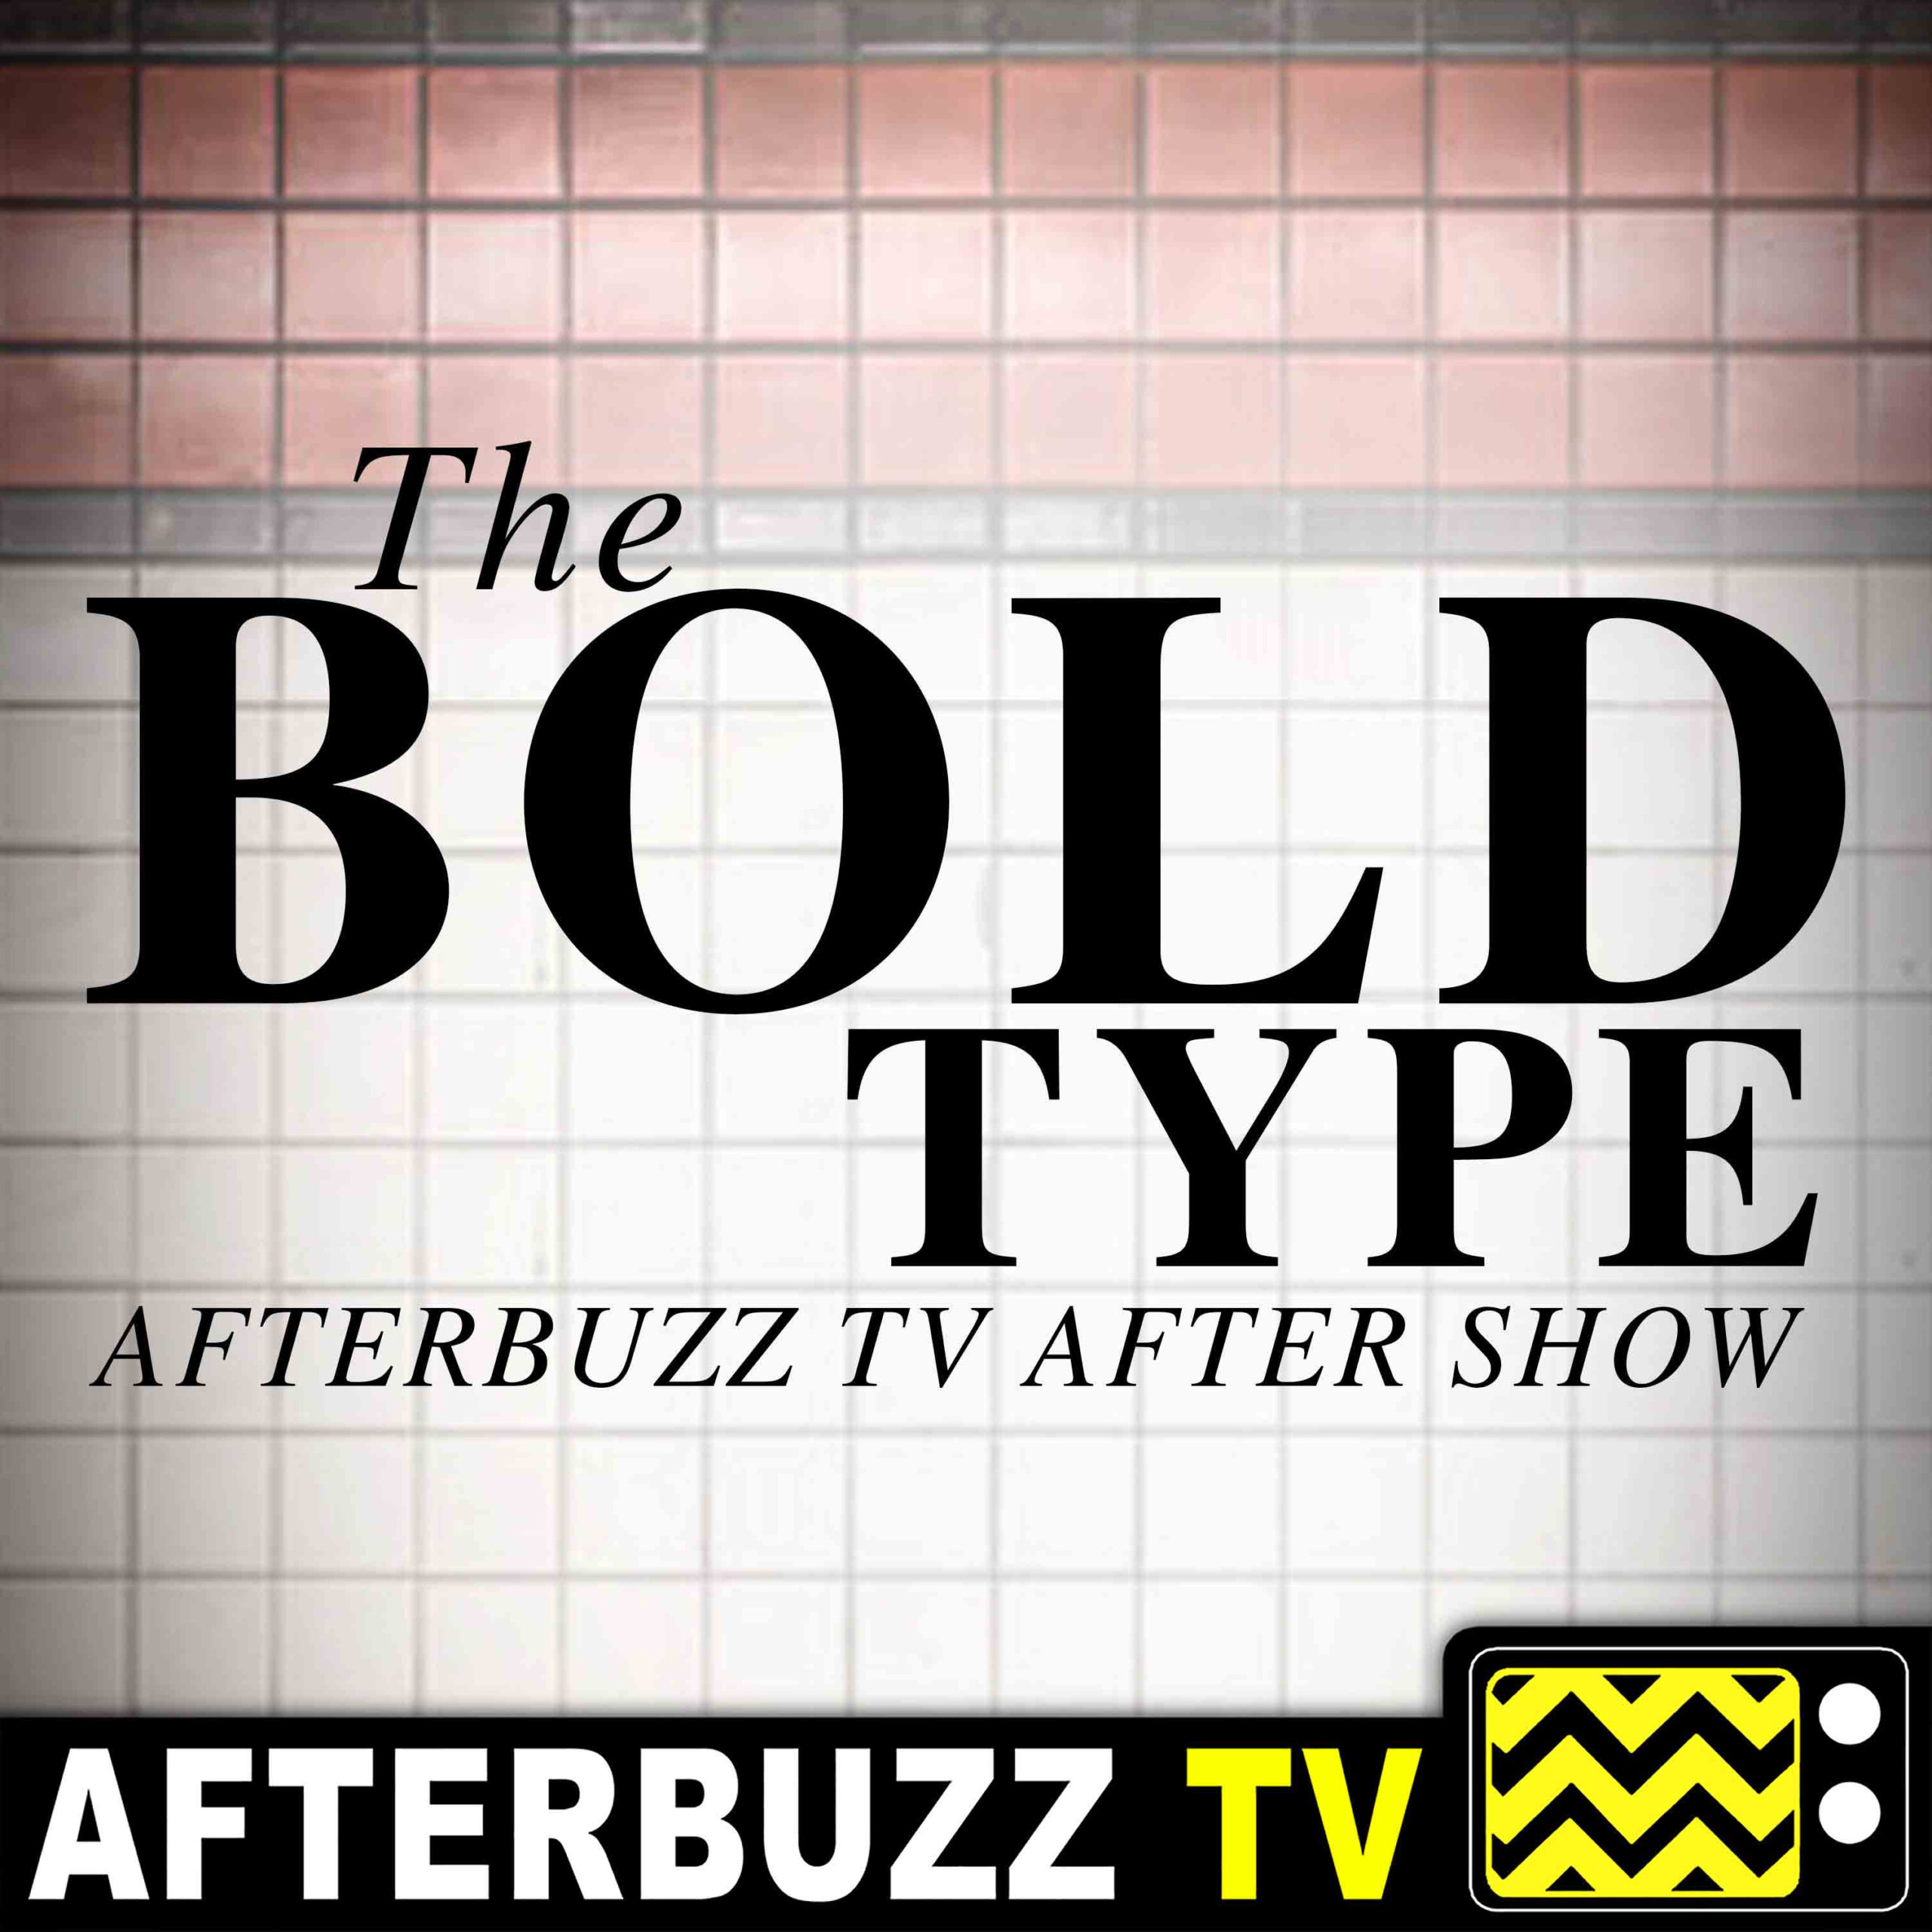 S4 E10 'The Bold Type' Review